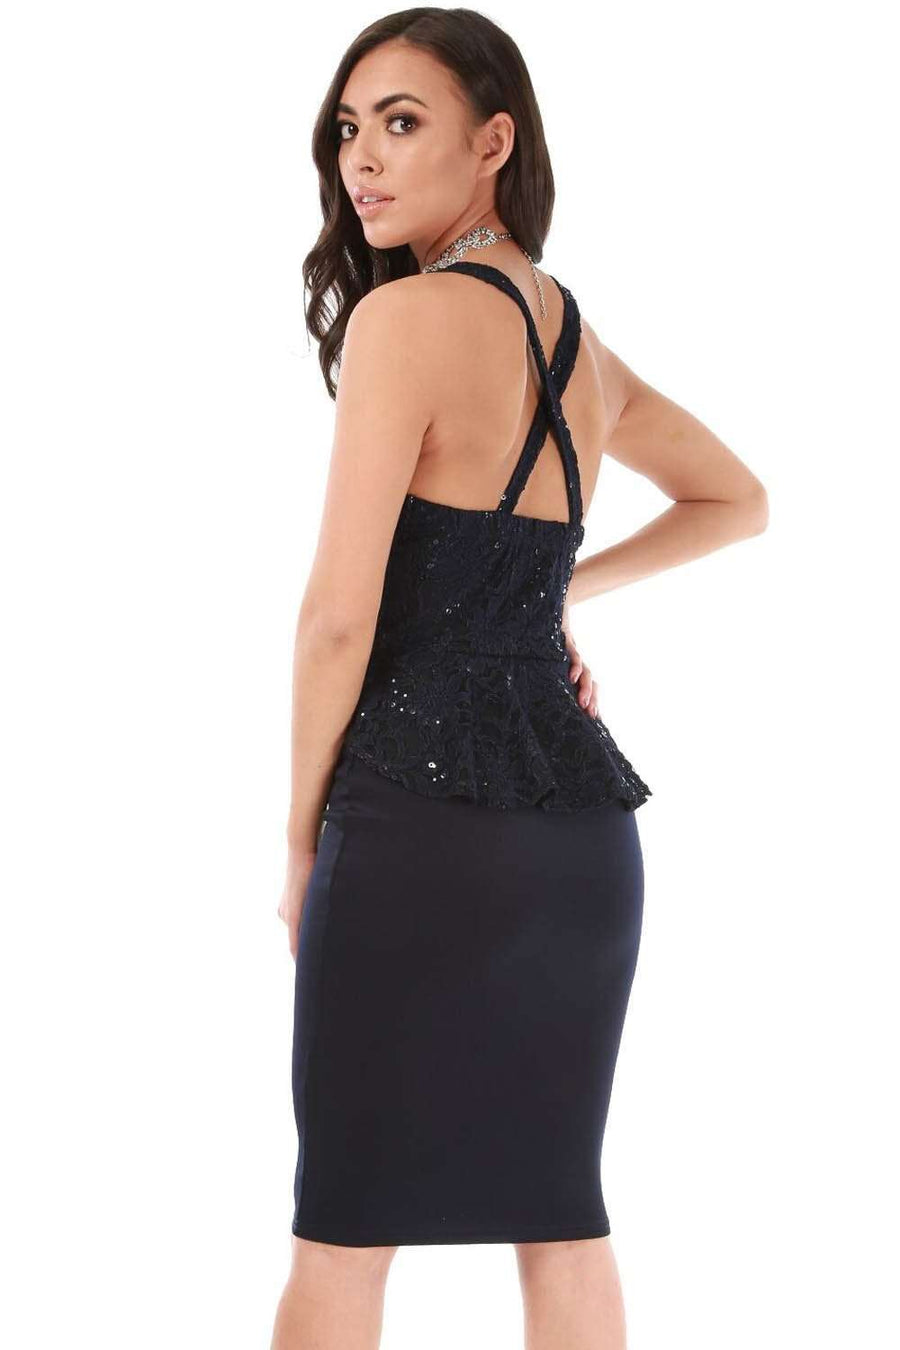 Navy Plunge Neck Peplum Frill Sequin Bodycon Dress - bejealous-com